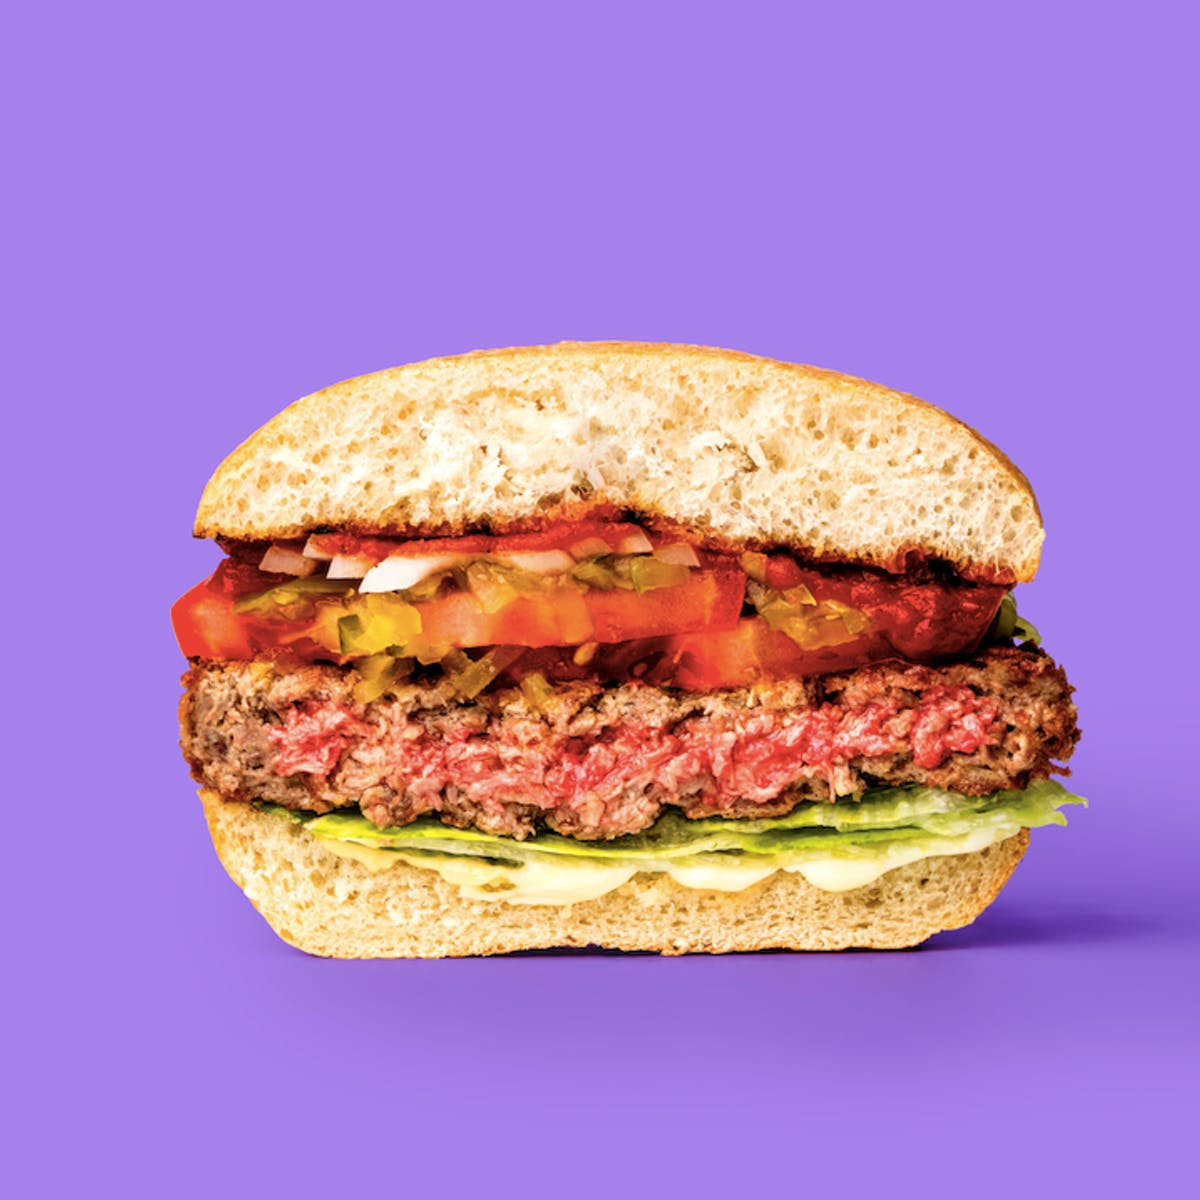 The Plant-Based Guide to Fast Food Meat, September 2019 Edition